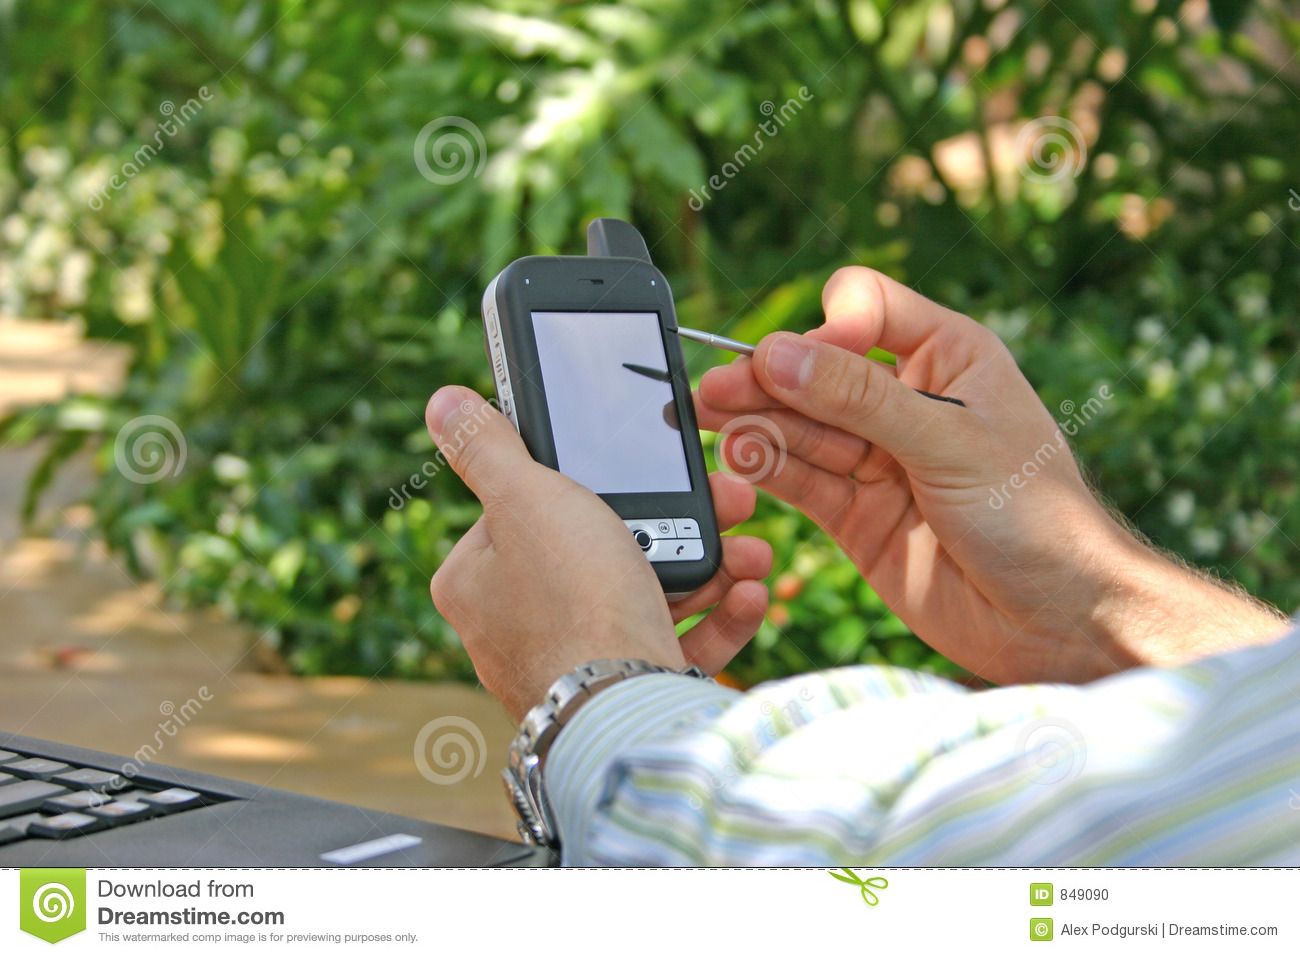 Man Using PDA / Smartphone Outside